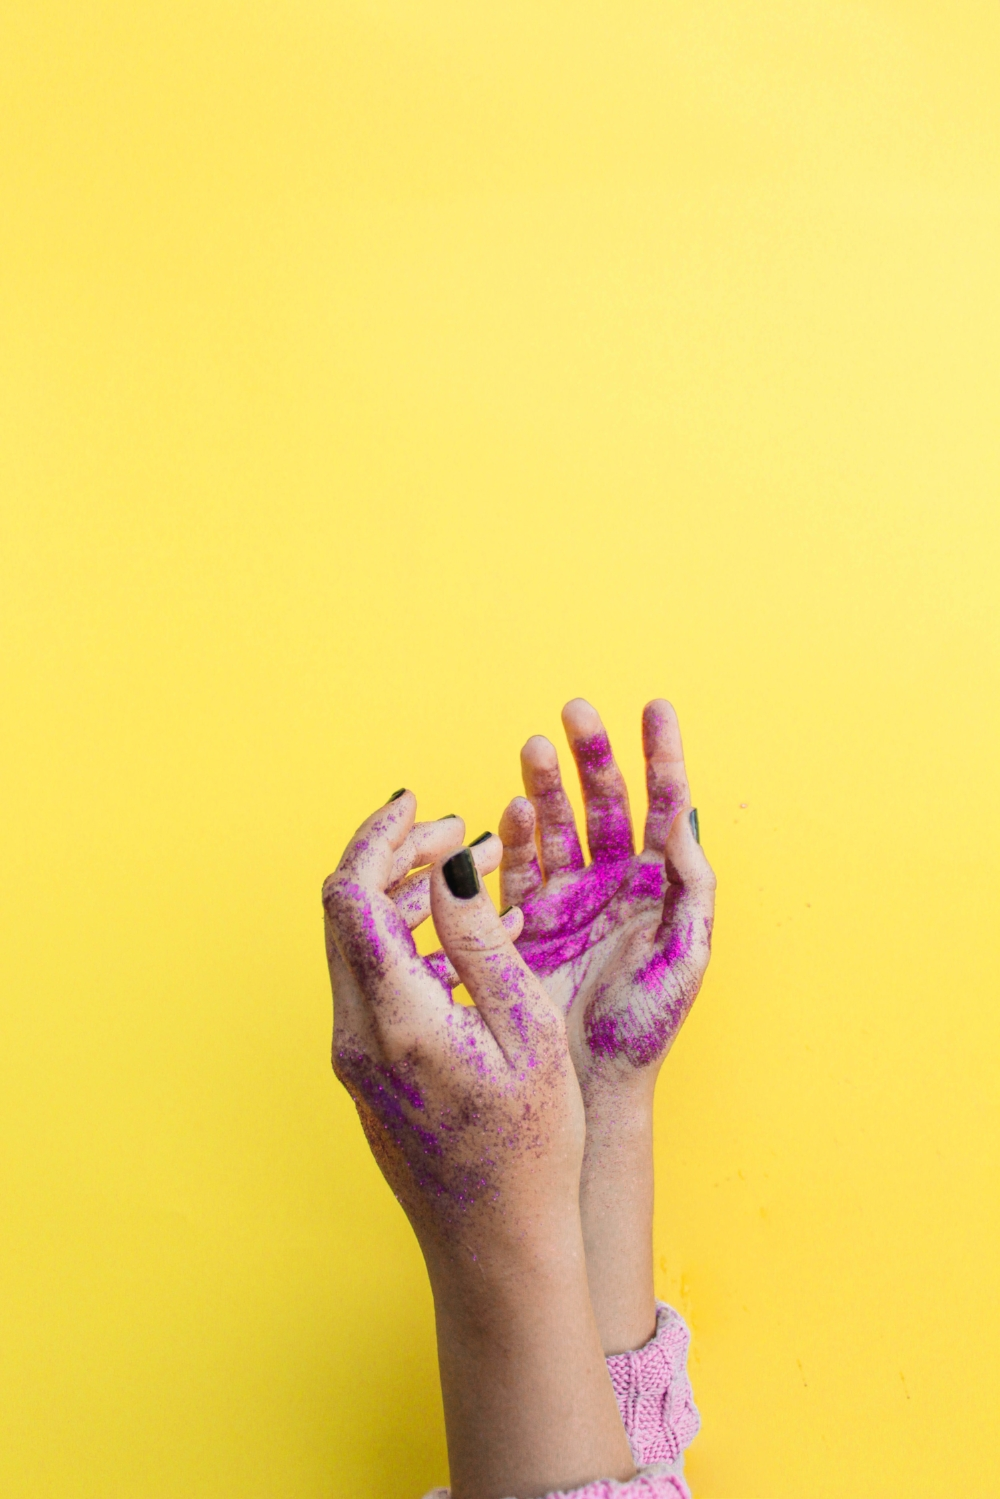 chosen because gemini rules the hands, arms & the color yellow. from UNSPLASH by NICOLE HONEYWILL